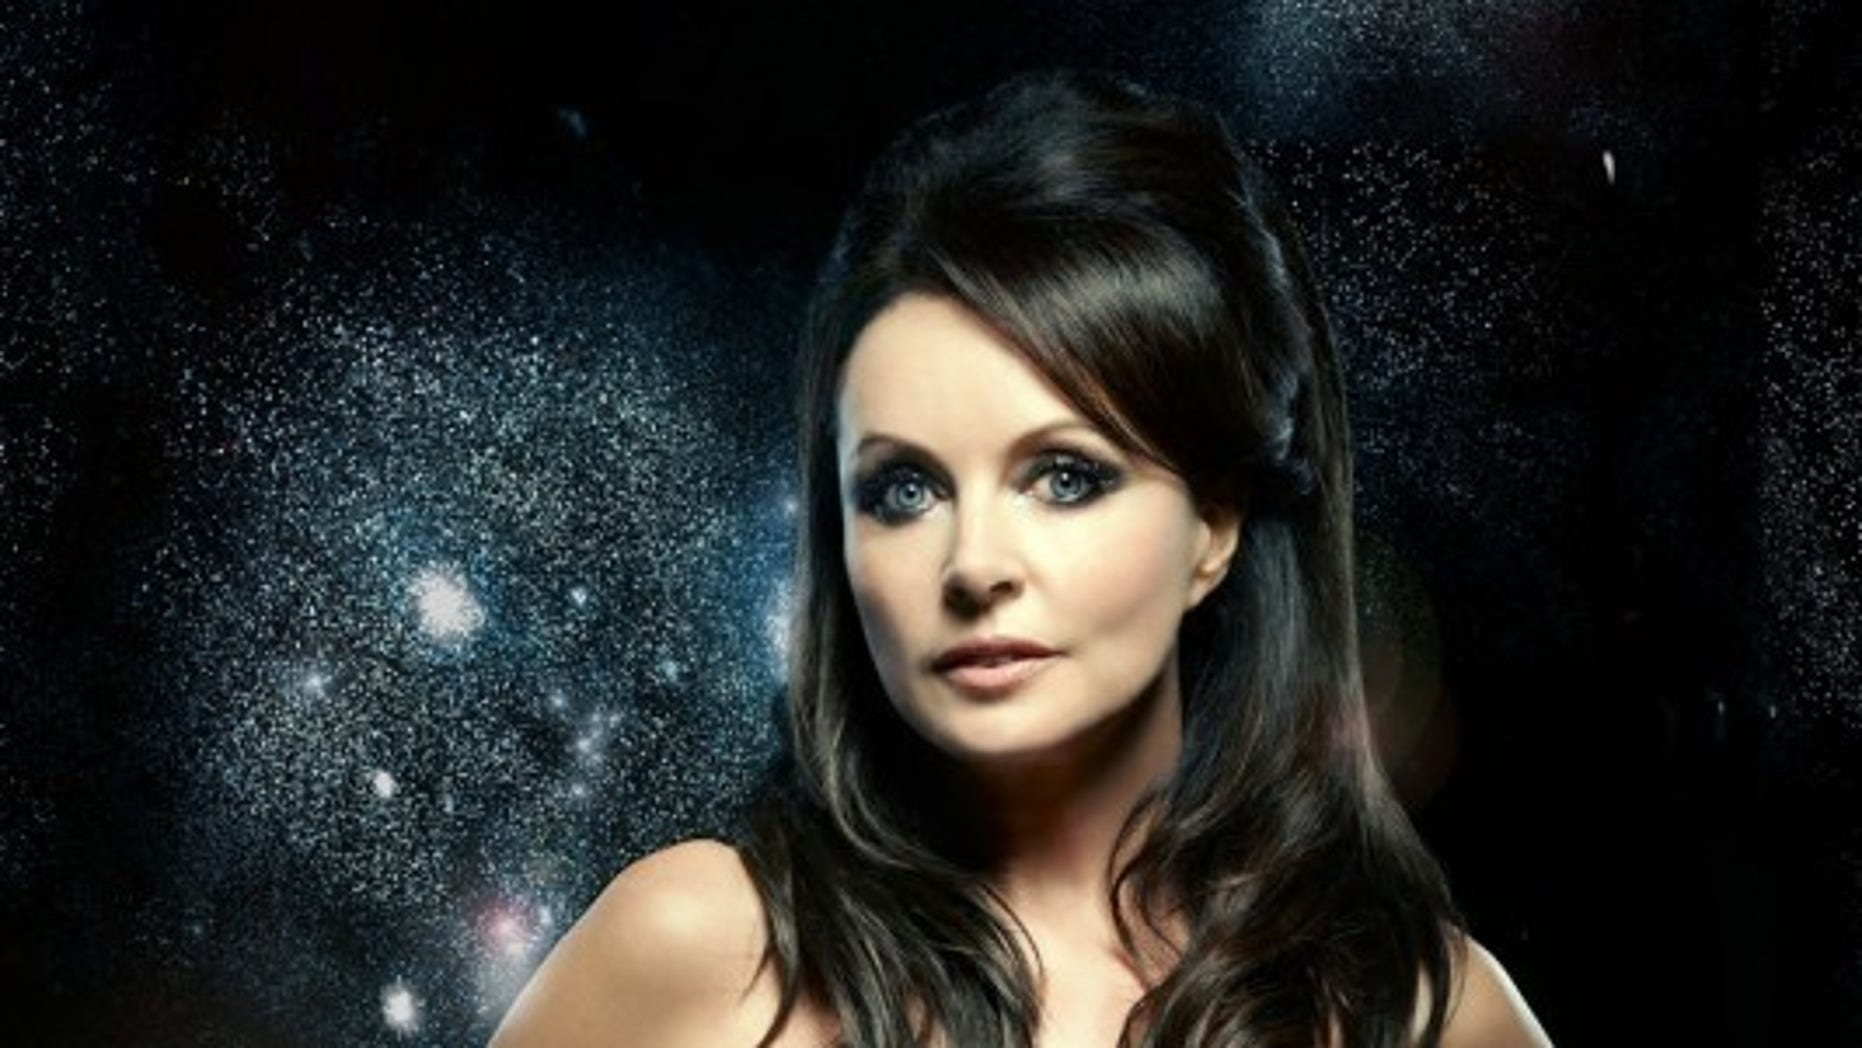 British singer Sarah Brightman has bought a seat on a Russian spacecraft to fly to the International Space Station.